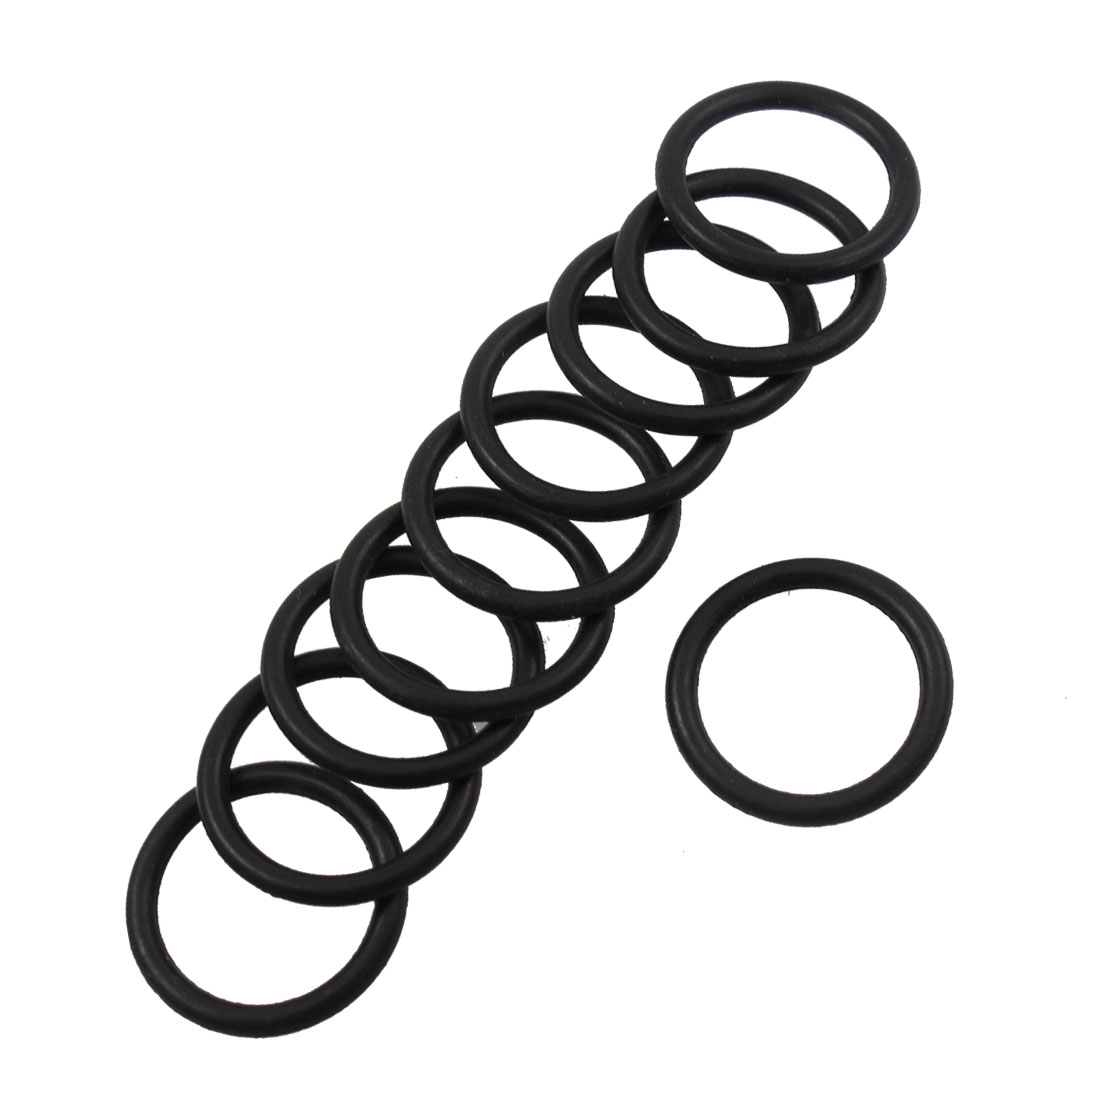 10 Pcs 17mm x 13mm x 2mm Rubber O Rings Gaskets Black